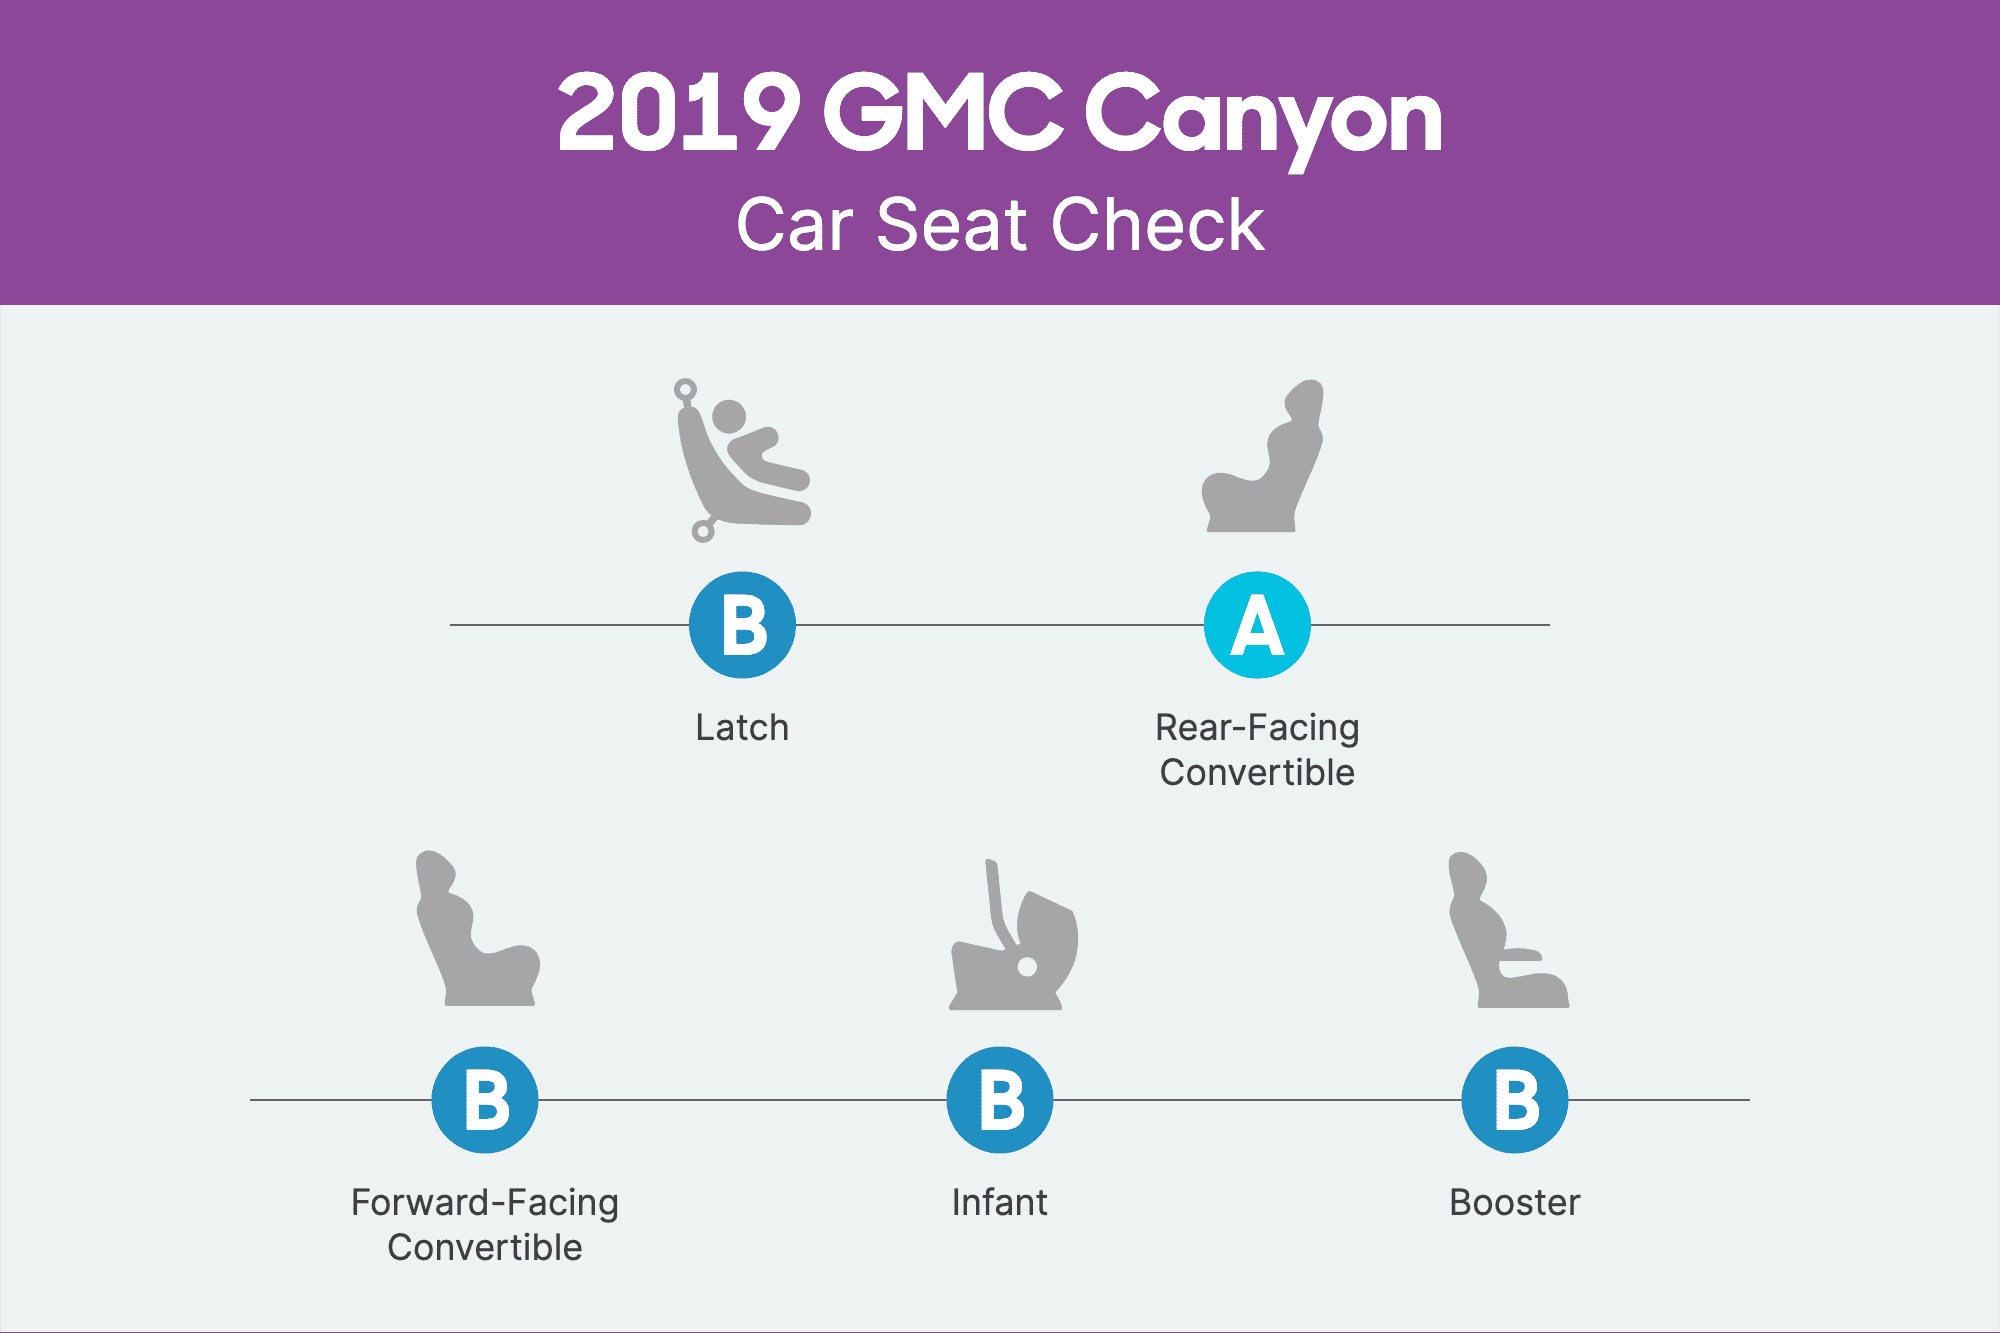 How Do Car Seats Fit in a 2019 GMC Canyon?